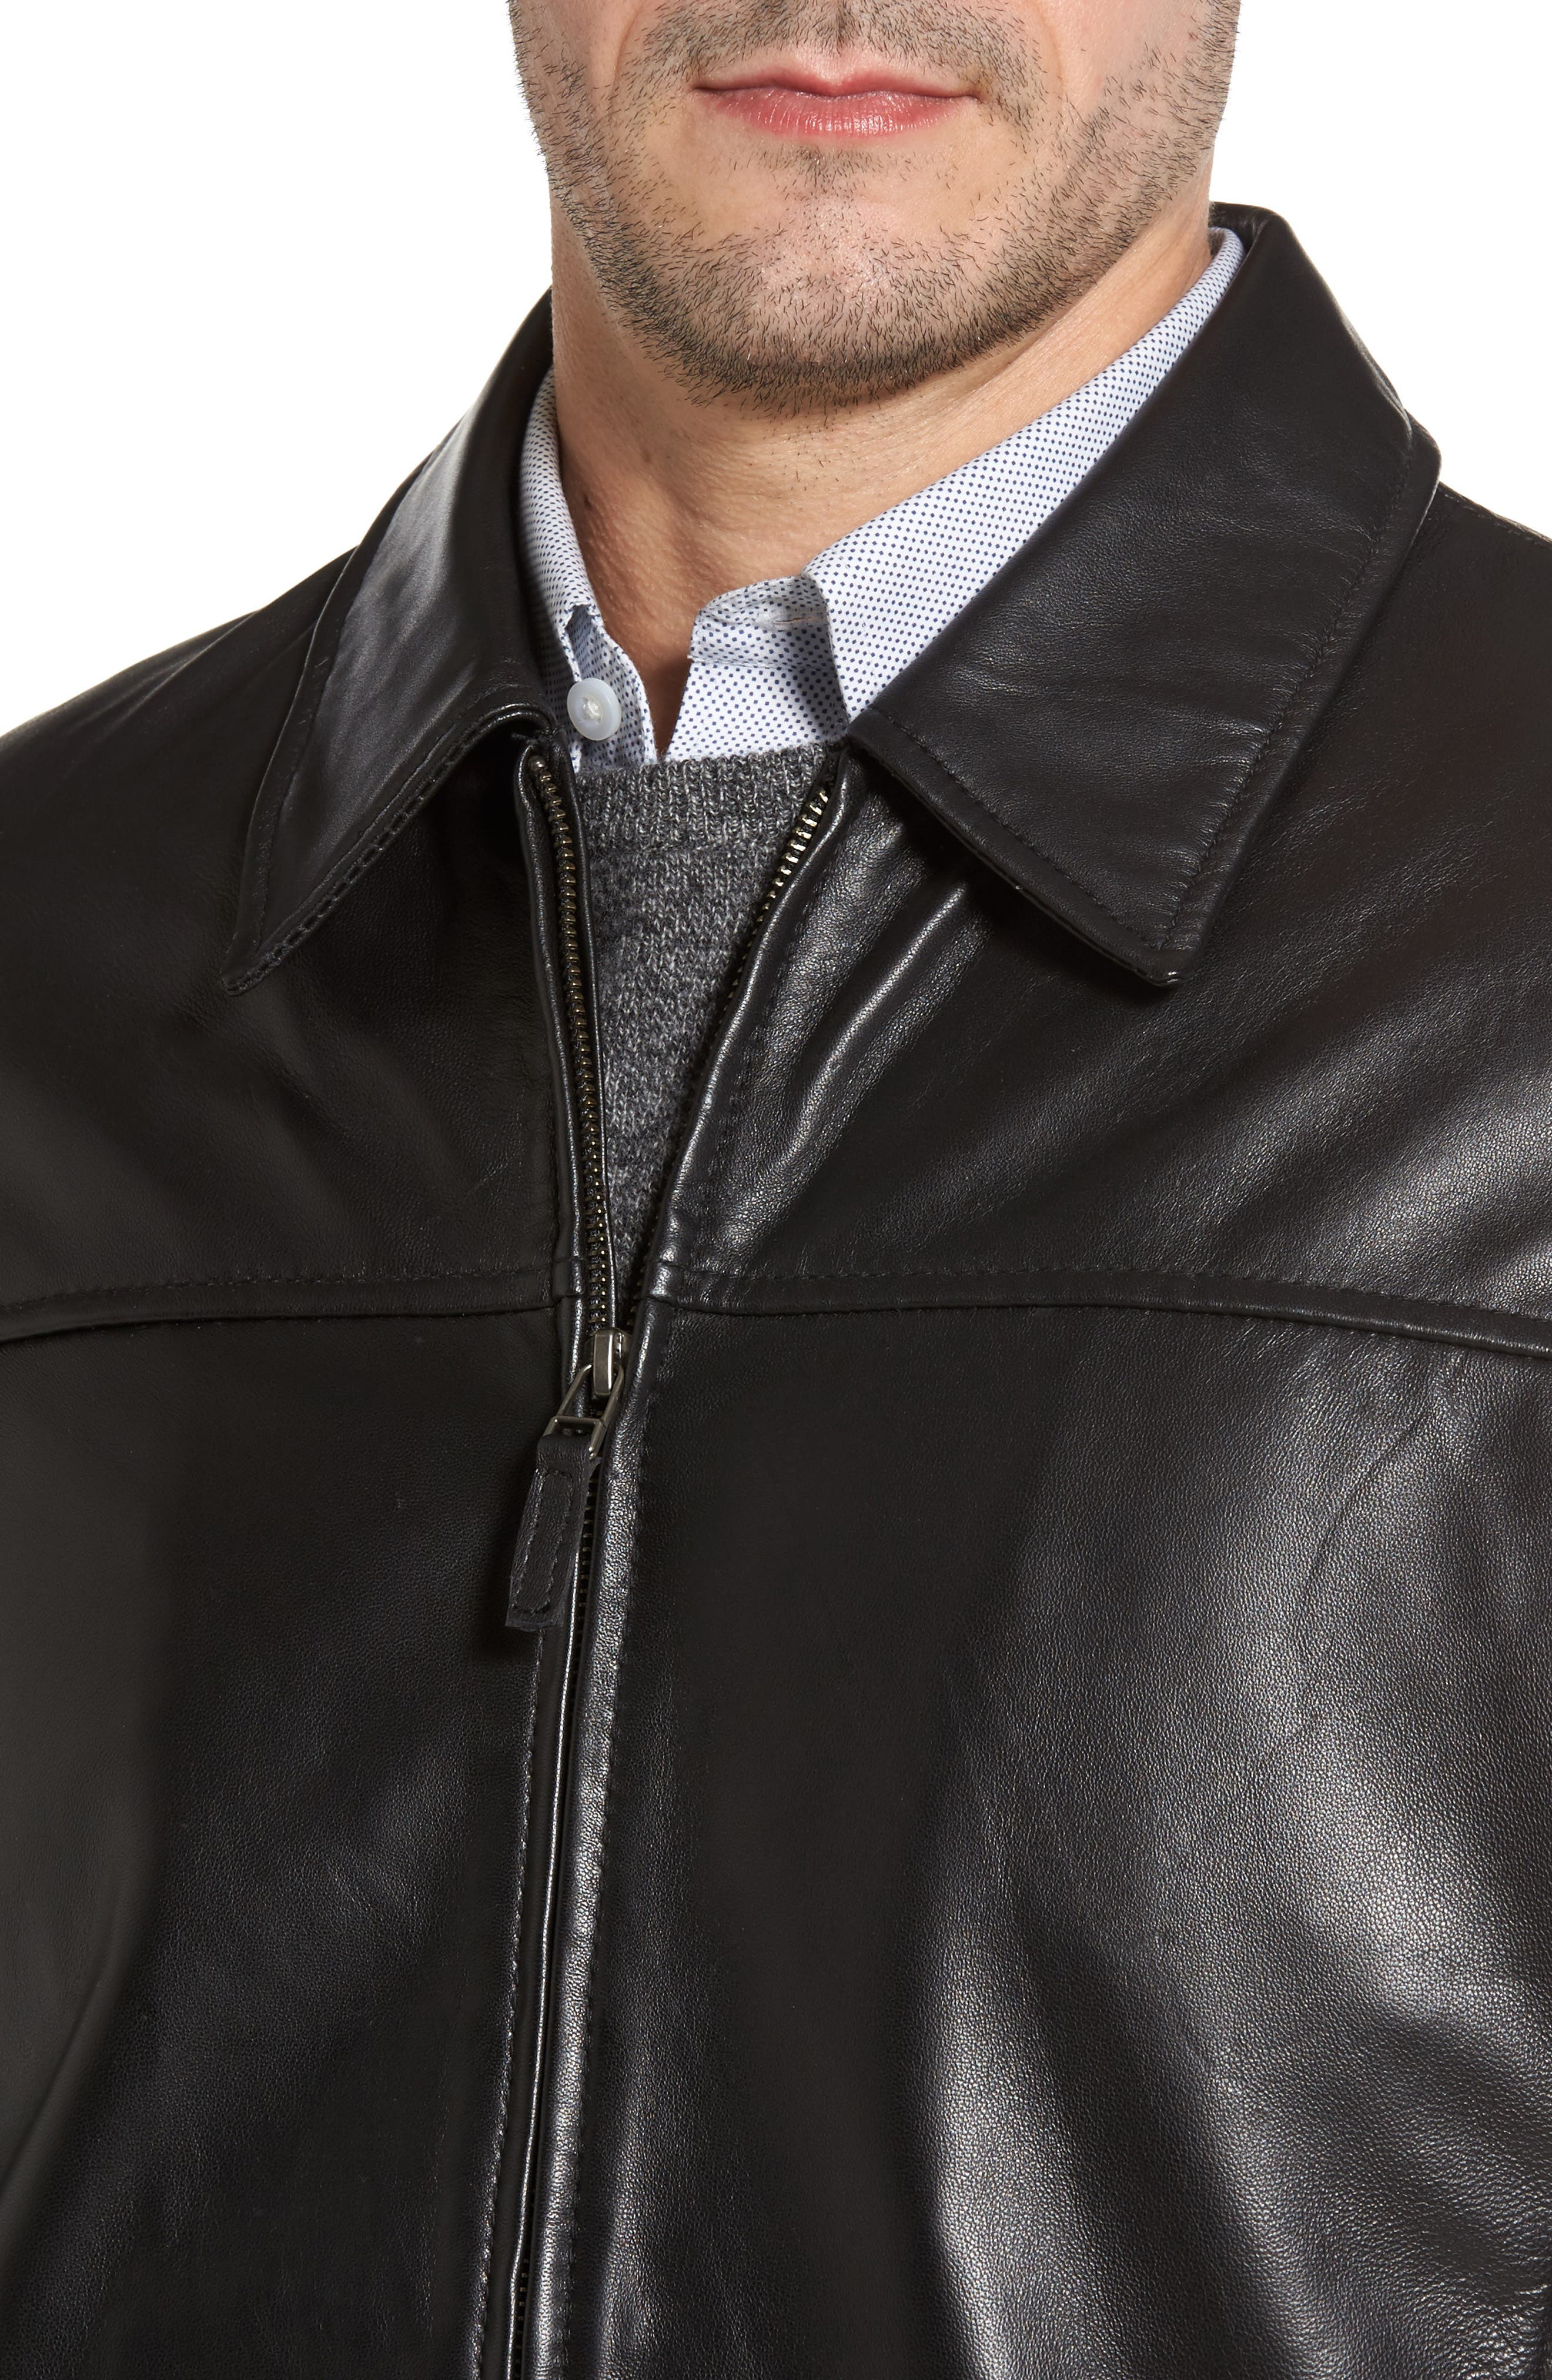 Collared Leather Jacket,                             Alternate thumbnail 4, color,                             Black